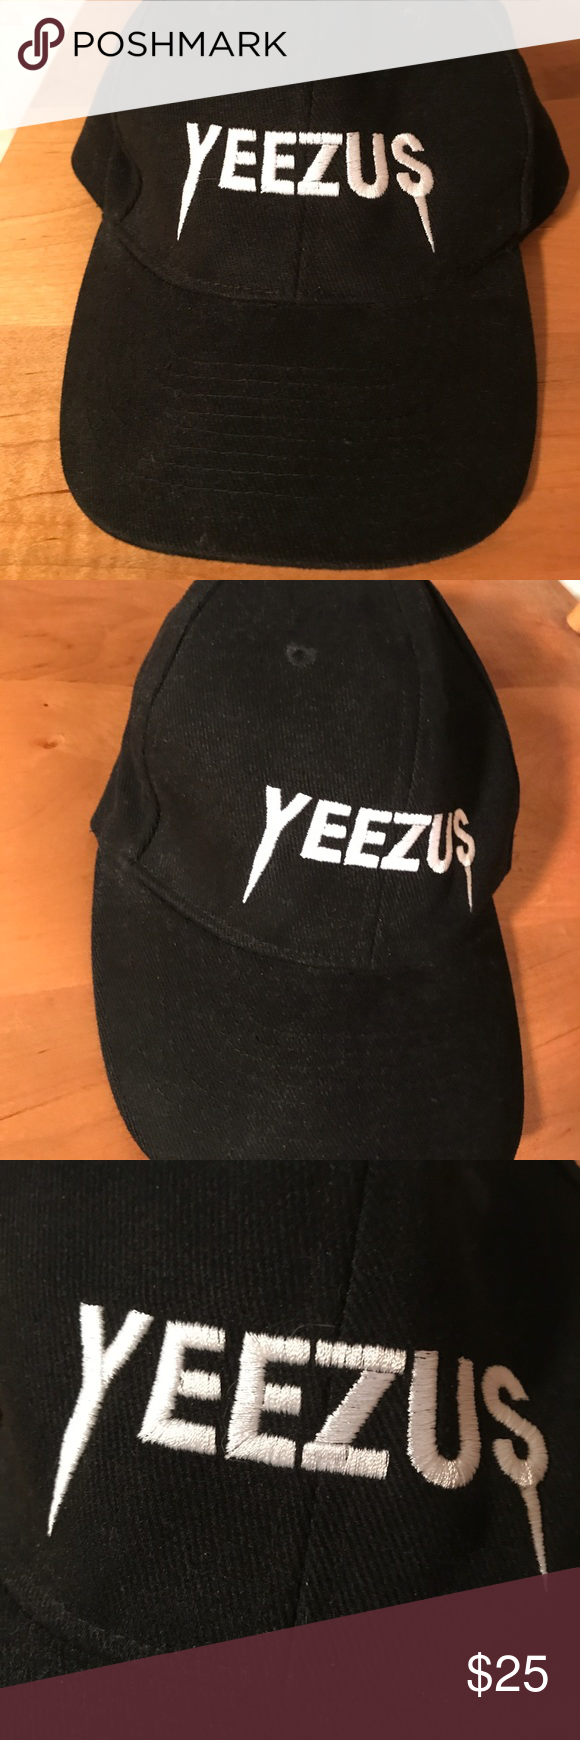 53af292f YEEZUS Tour Hat Only worn a couple of times. Authentic Yeezy Accessory.  Unisex Yeezus Accessories Hats